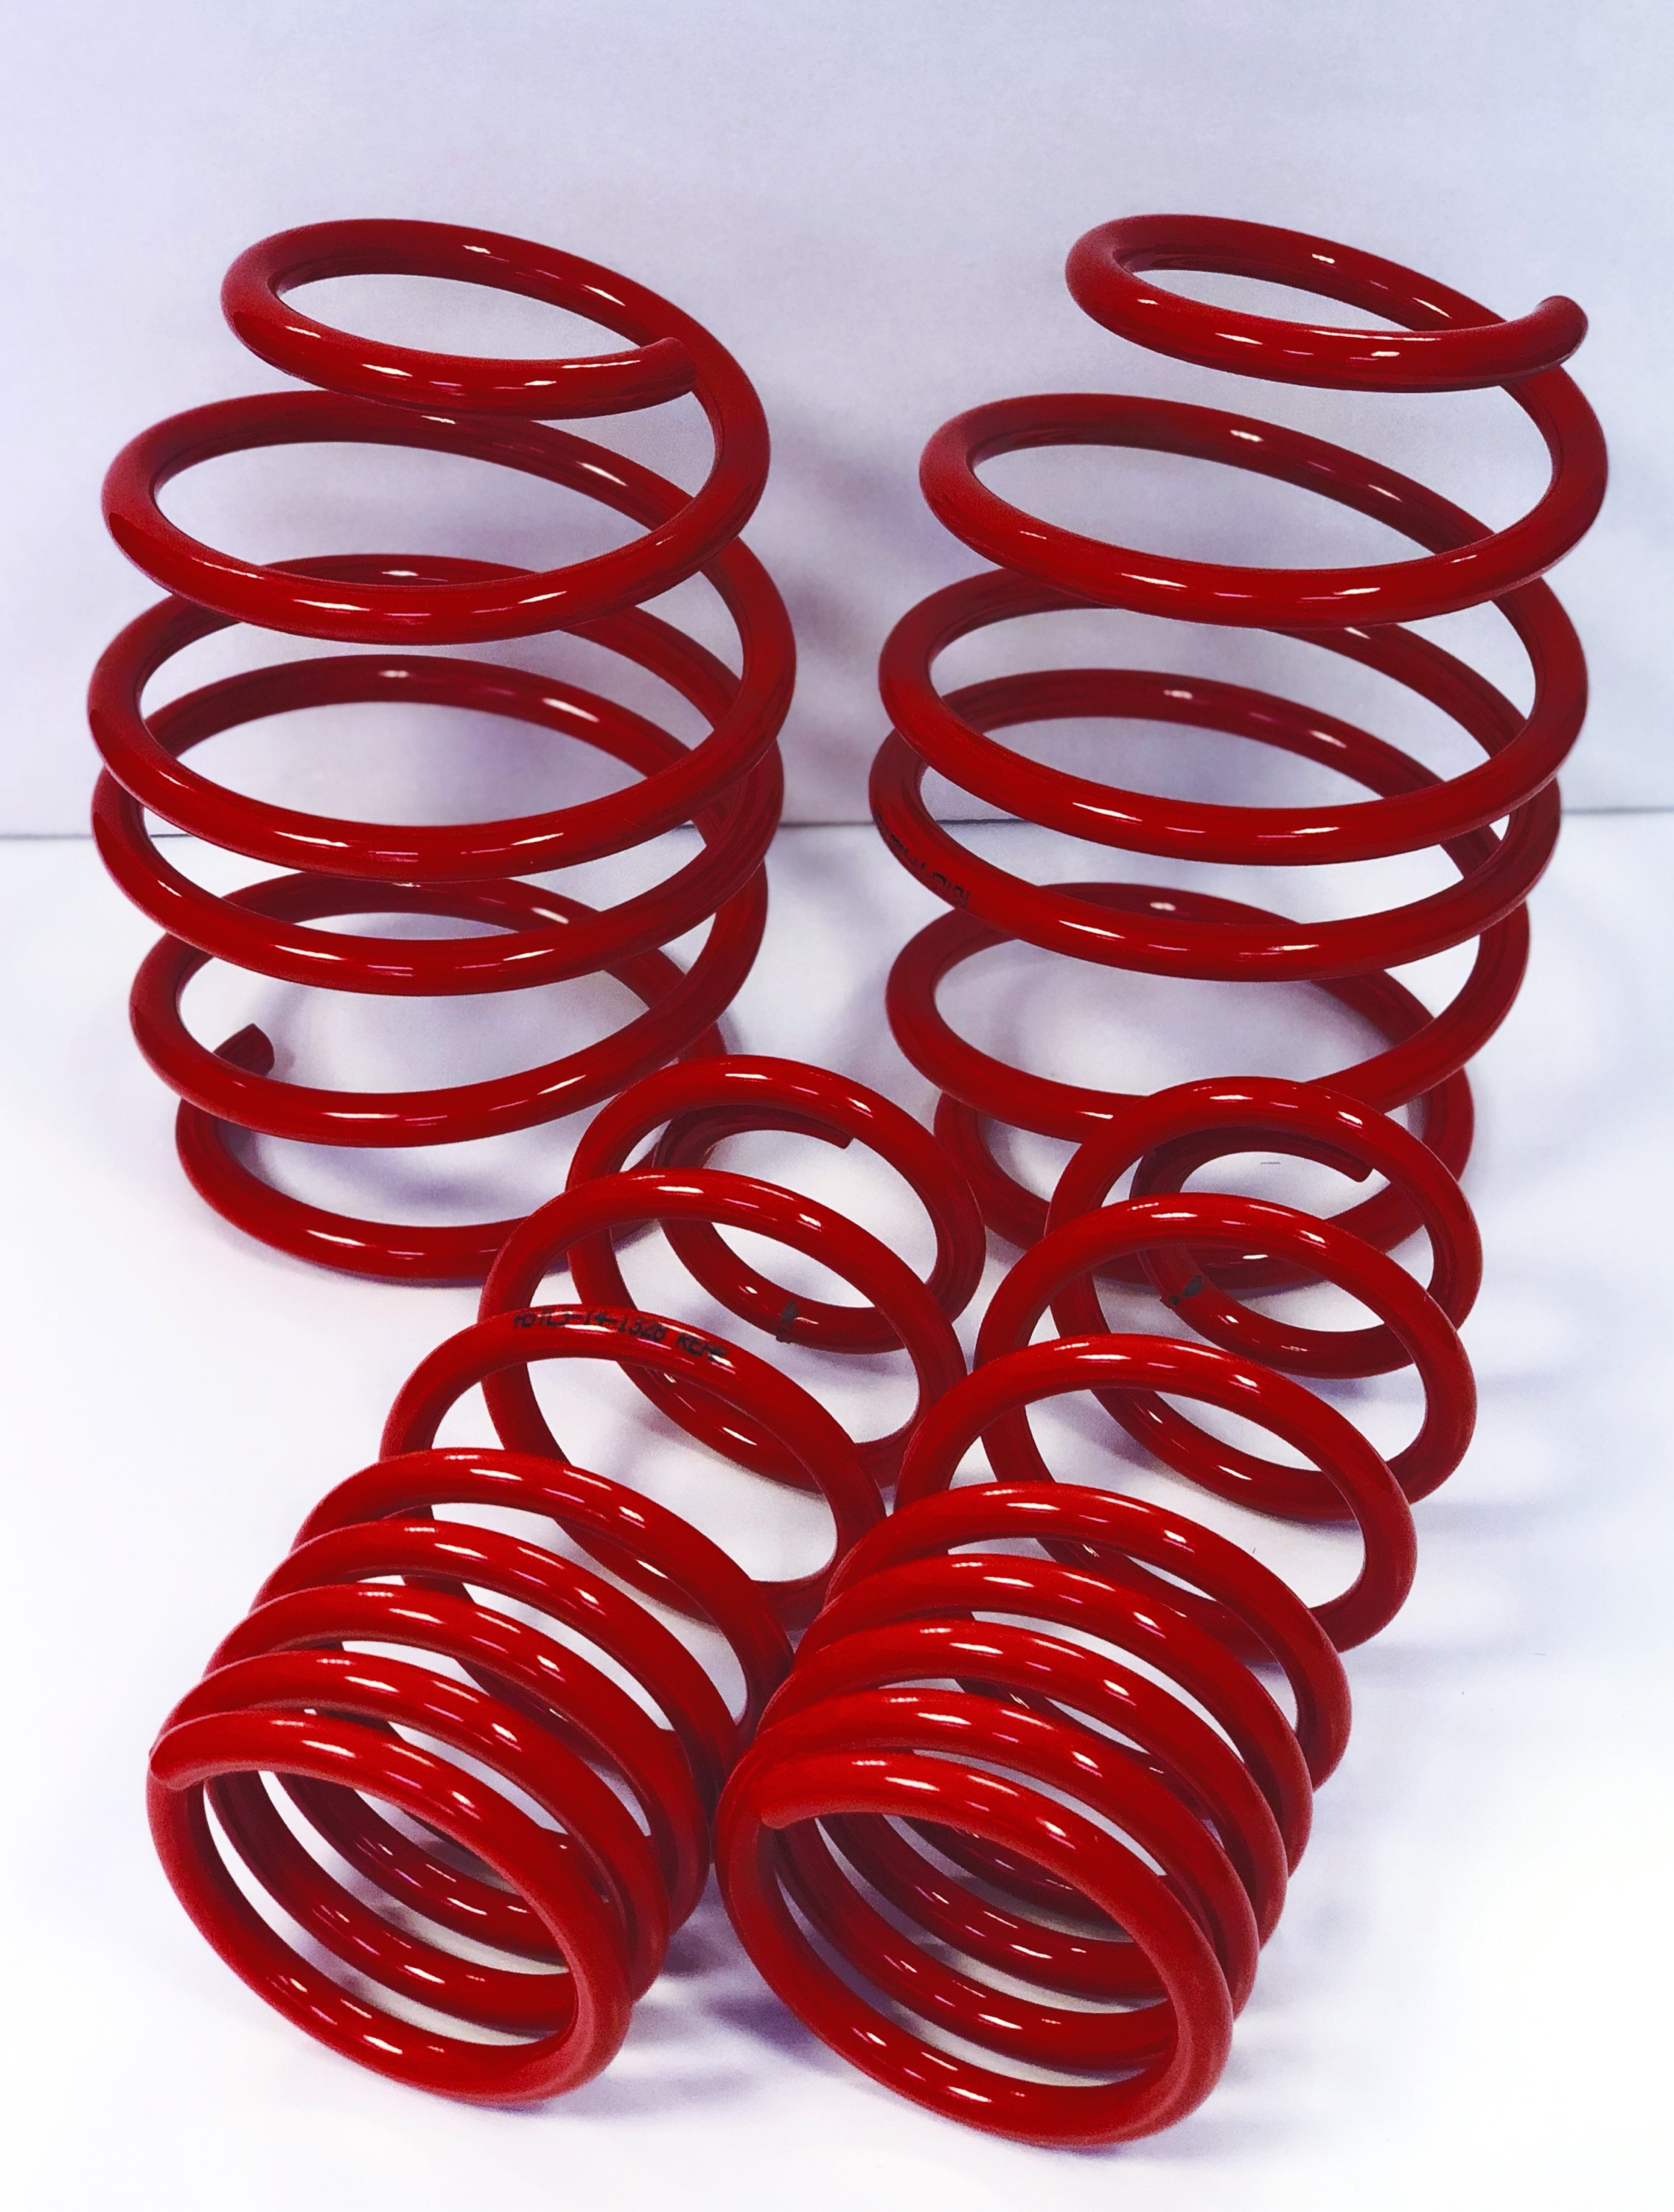 Vauxhall ASTRA AST Suspension Lowering Springs 30MM